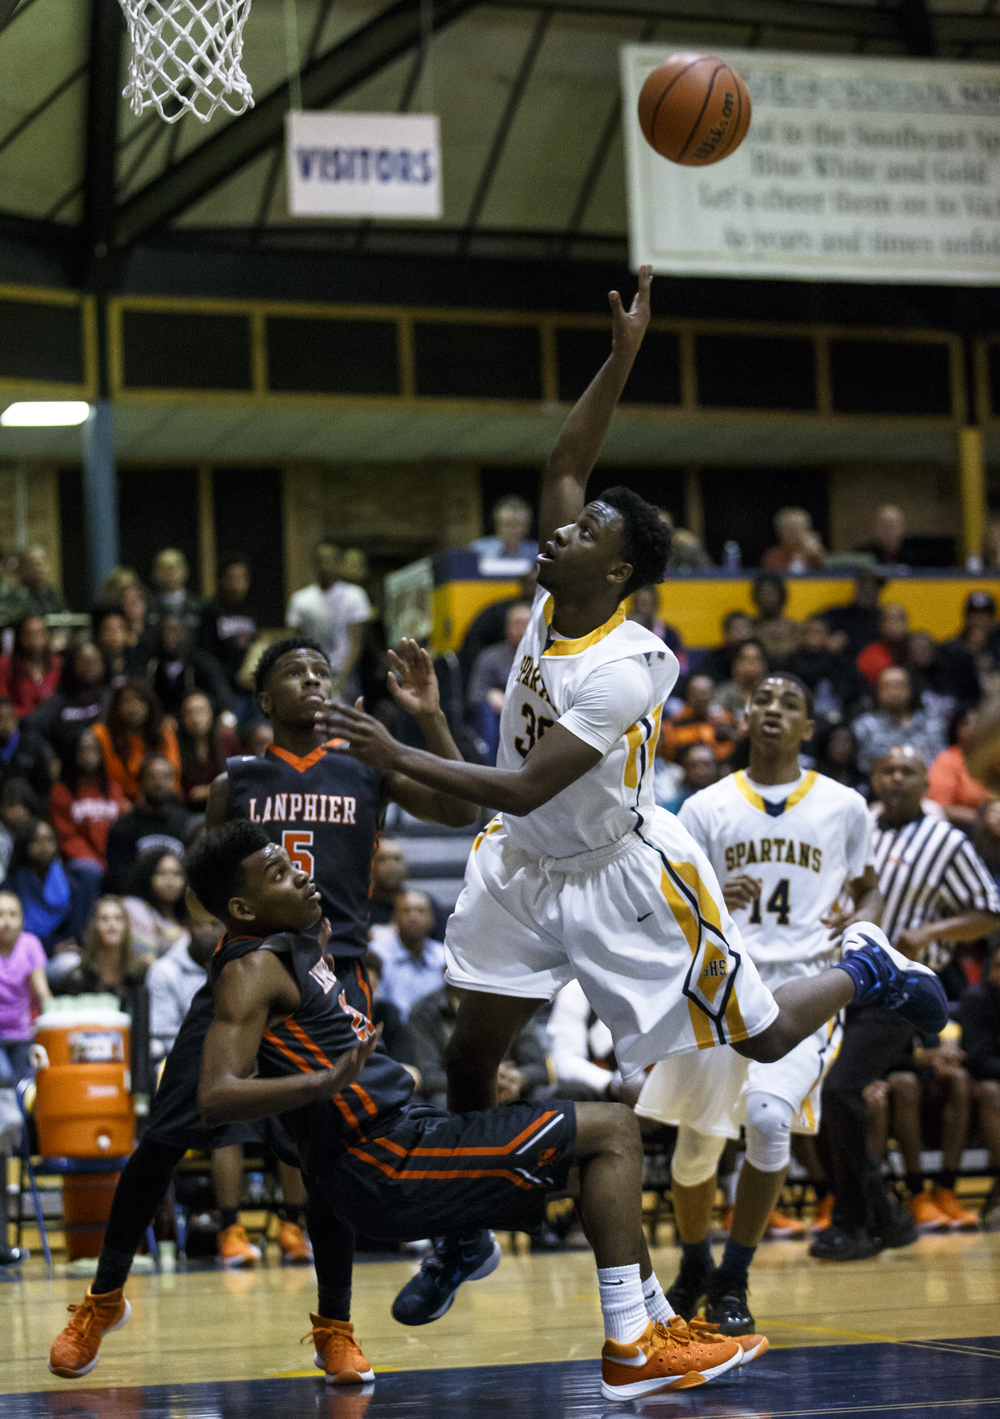 Southeast's D'Angelo Hughes (30) lets a floater go against Lanphier's Aundrae Williams (23) in the first half at Herb Scheffler Gymnasium, Friday, Feb. 26, 2016, in Springfield, Ill. Justin L. Fowler/The State Journal-Register